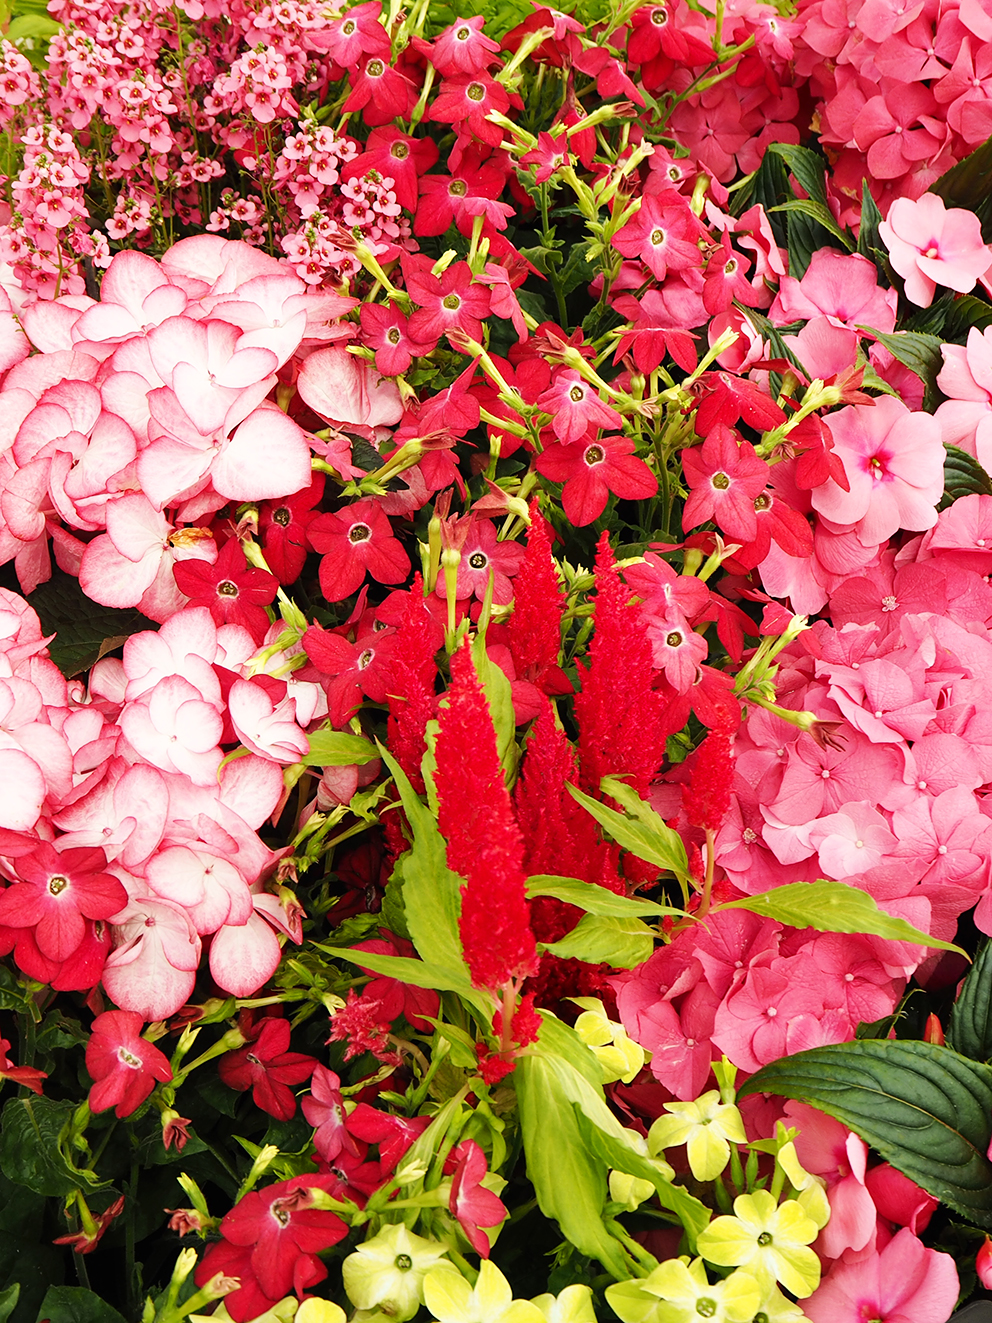 French For Pineapple Blog - RHS Chelsea Flower Show 2017 - Close up of pink and red flowers